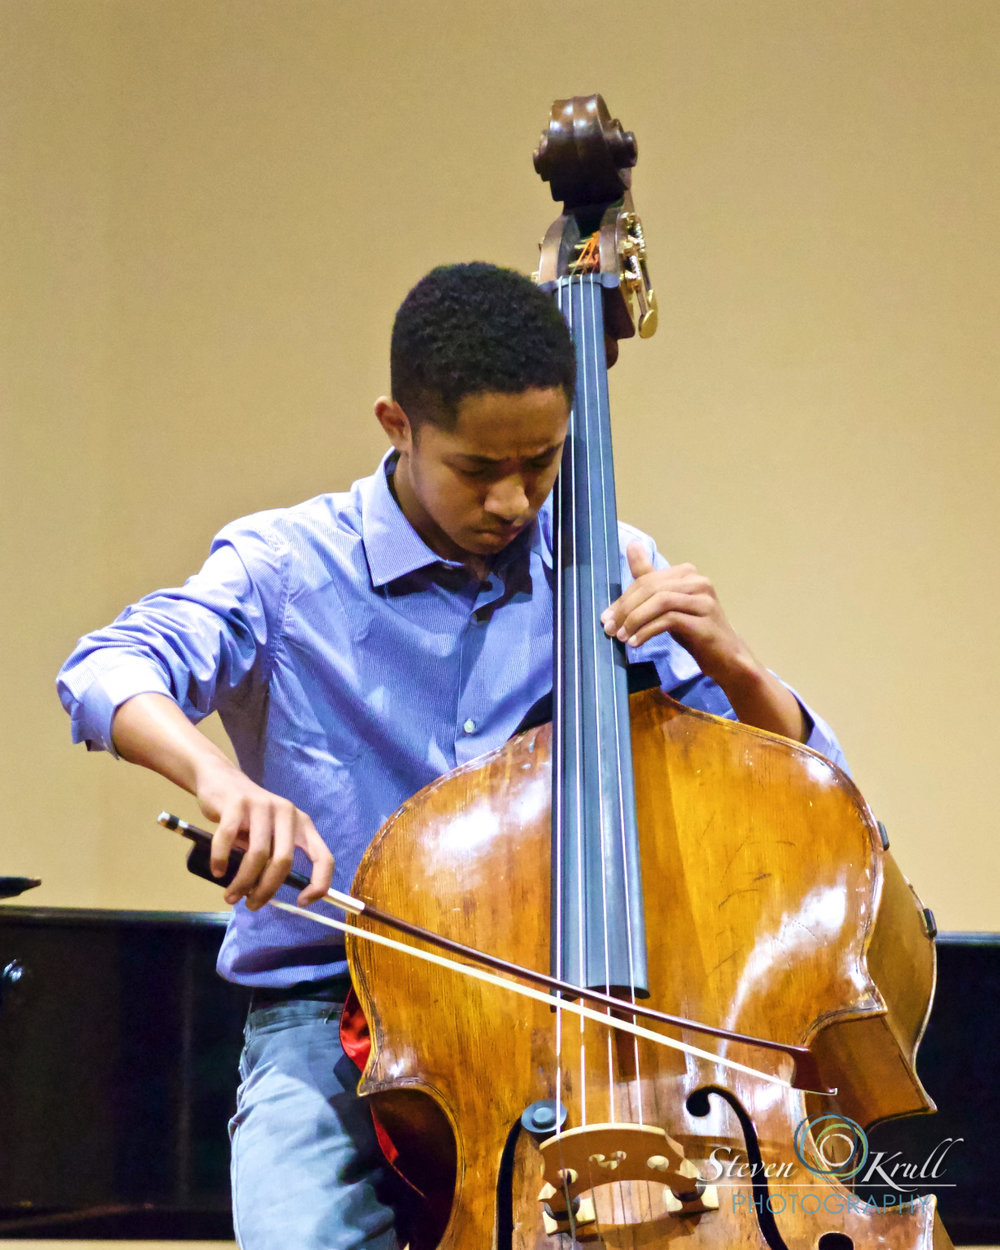 Our Mission - WE PROMOTE DIVERSITY IN CLASSICAL MUSIC THROUGH MENTORING AND FINANCIALLY SUSTAINING THE MUSICAL AMBITIONS OF YOUNG, PROMISING PHILADELPHIANSLearn More